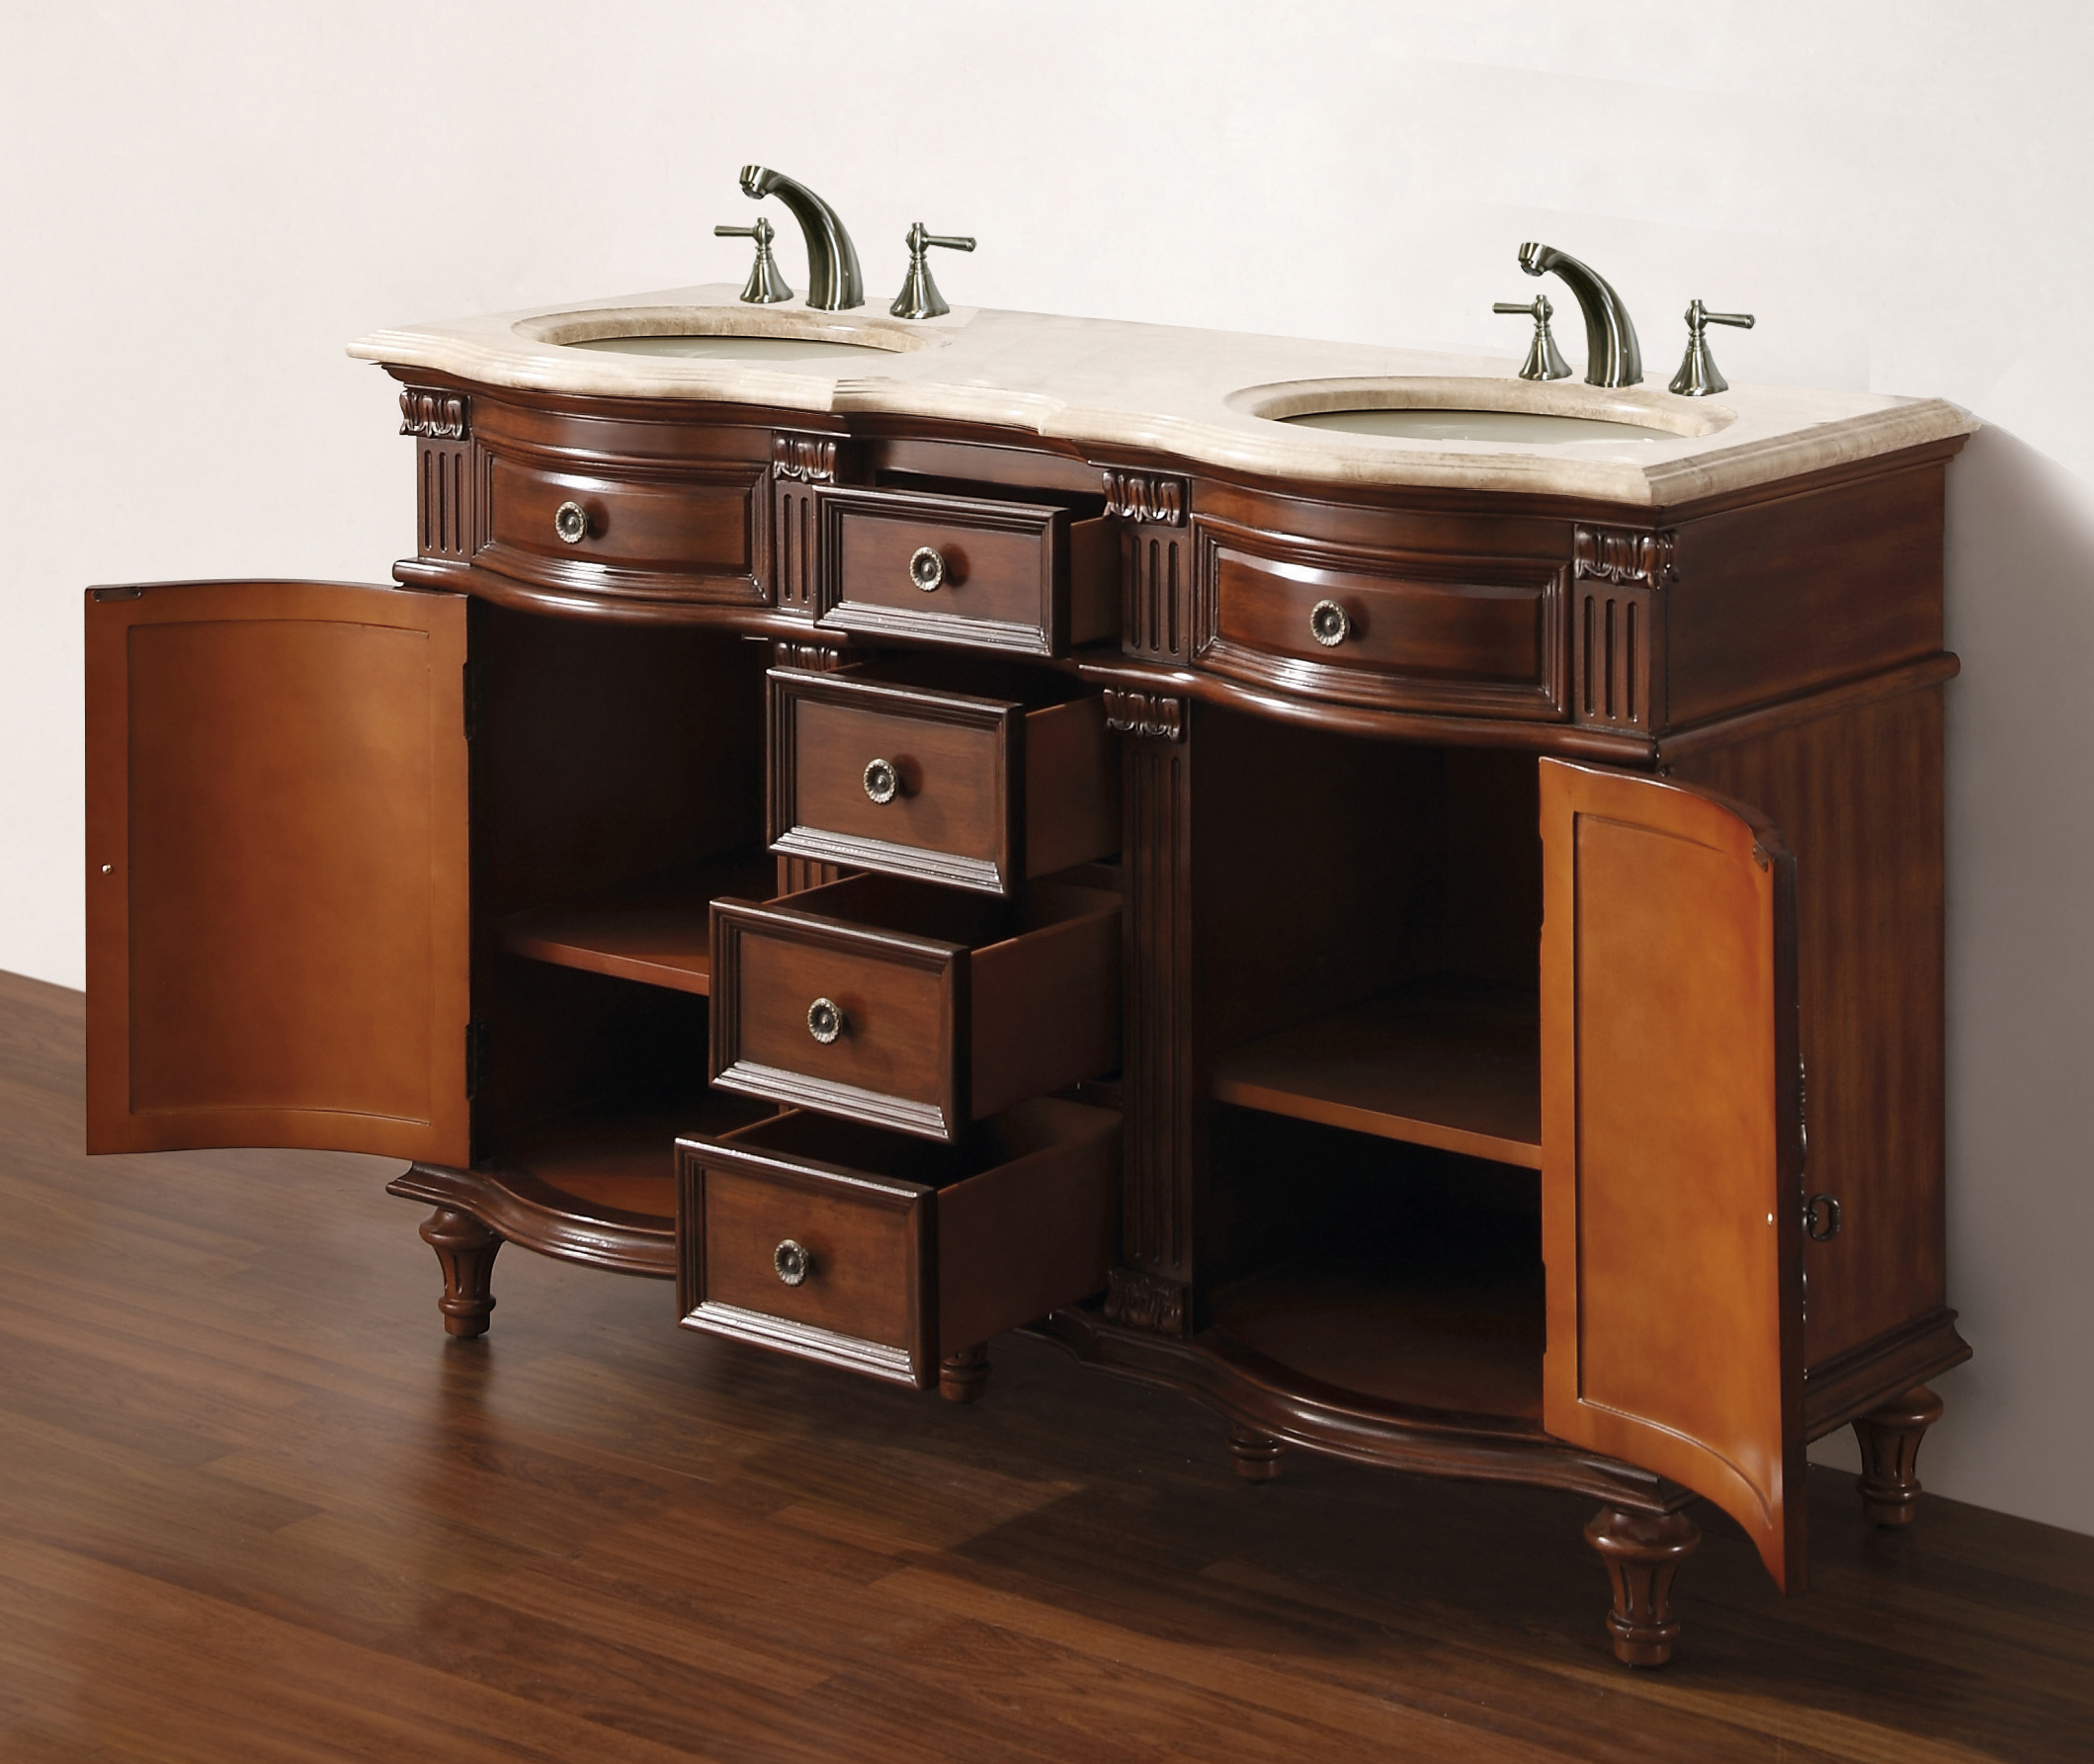 55inch norwalk vanity special vanity sale bathroom vanity sale